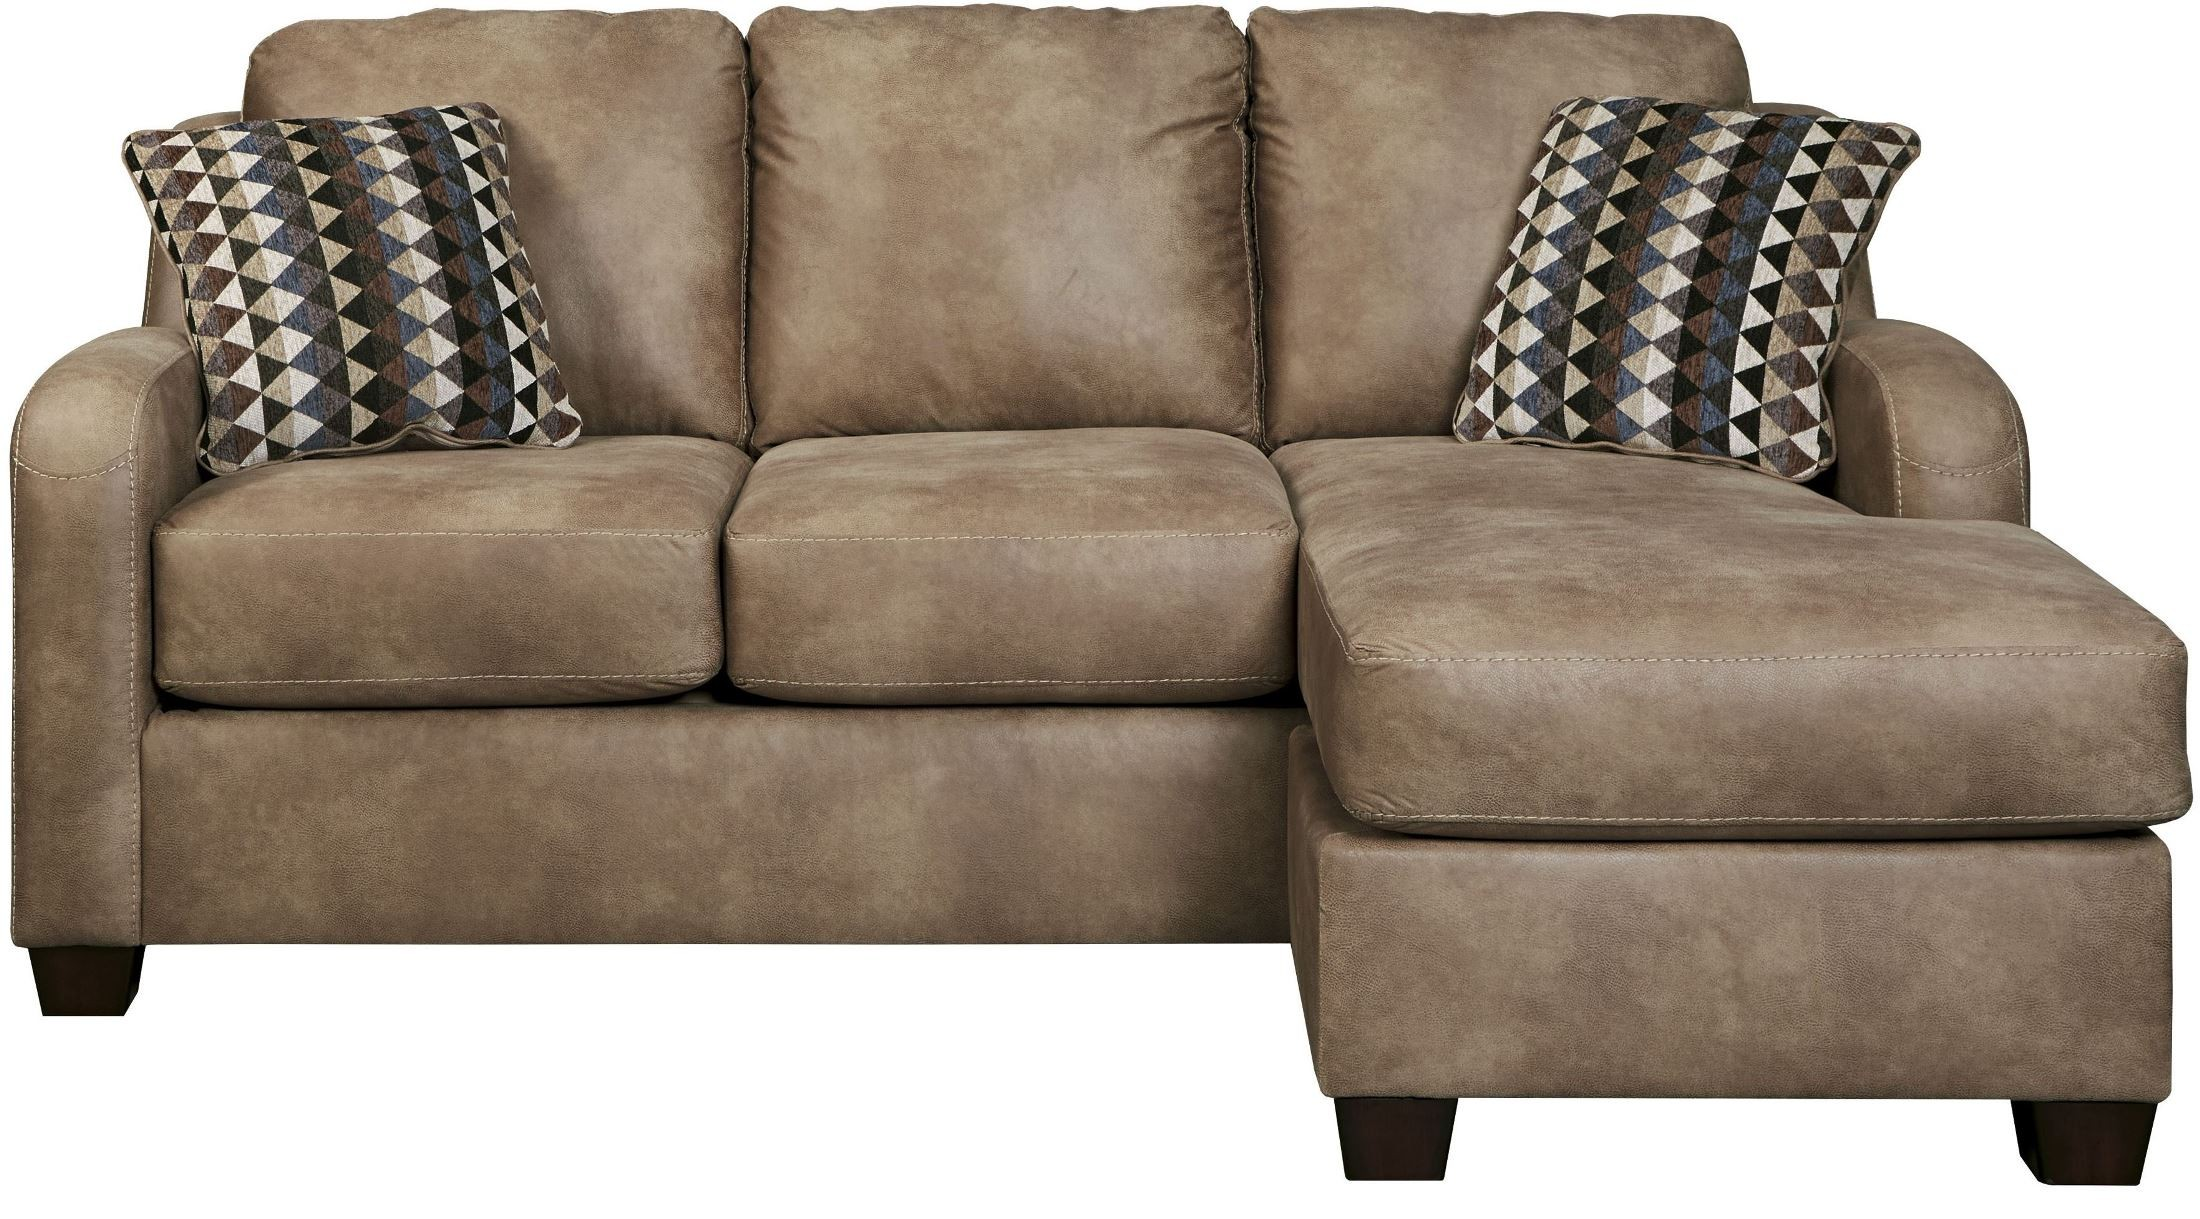 Alturo Dune Sofa Chaise From Ashley 6000318 Coleman